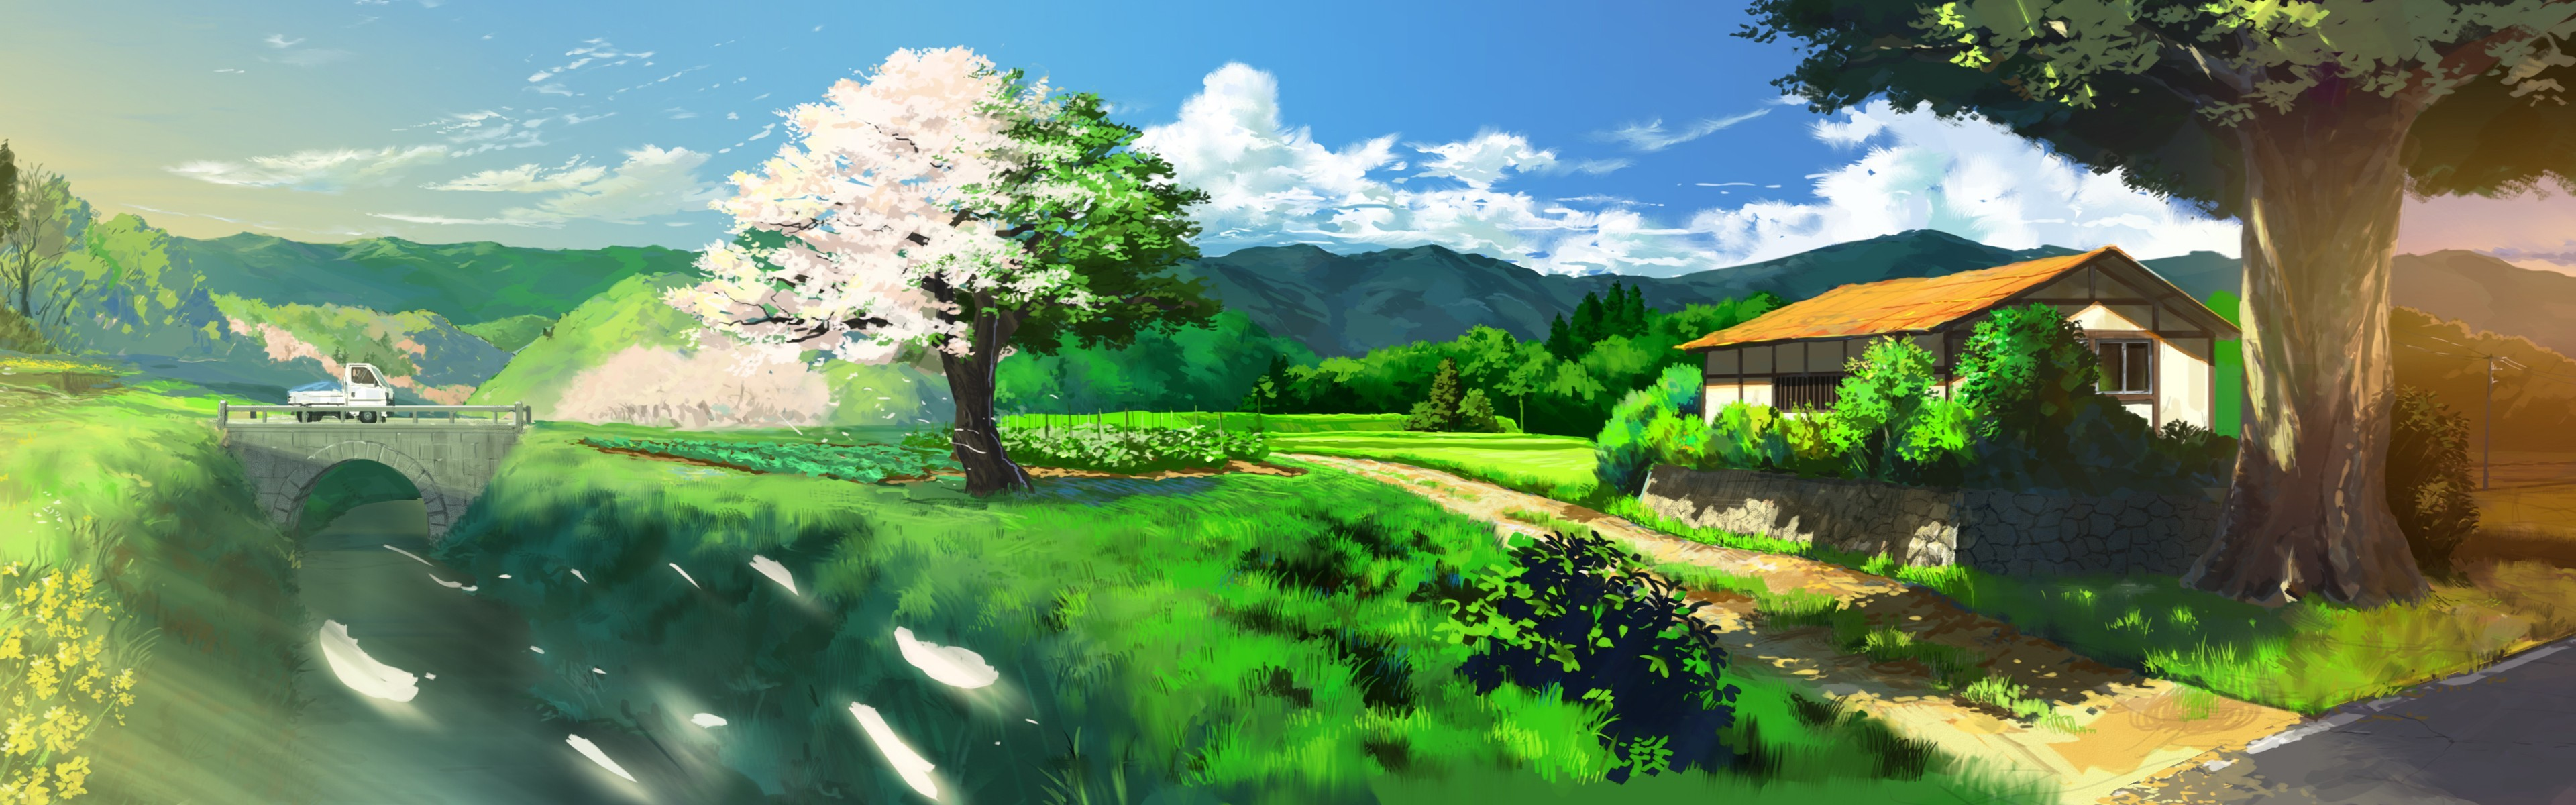 /w/ – Anime/Wallpapers » Thread #1763346